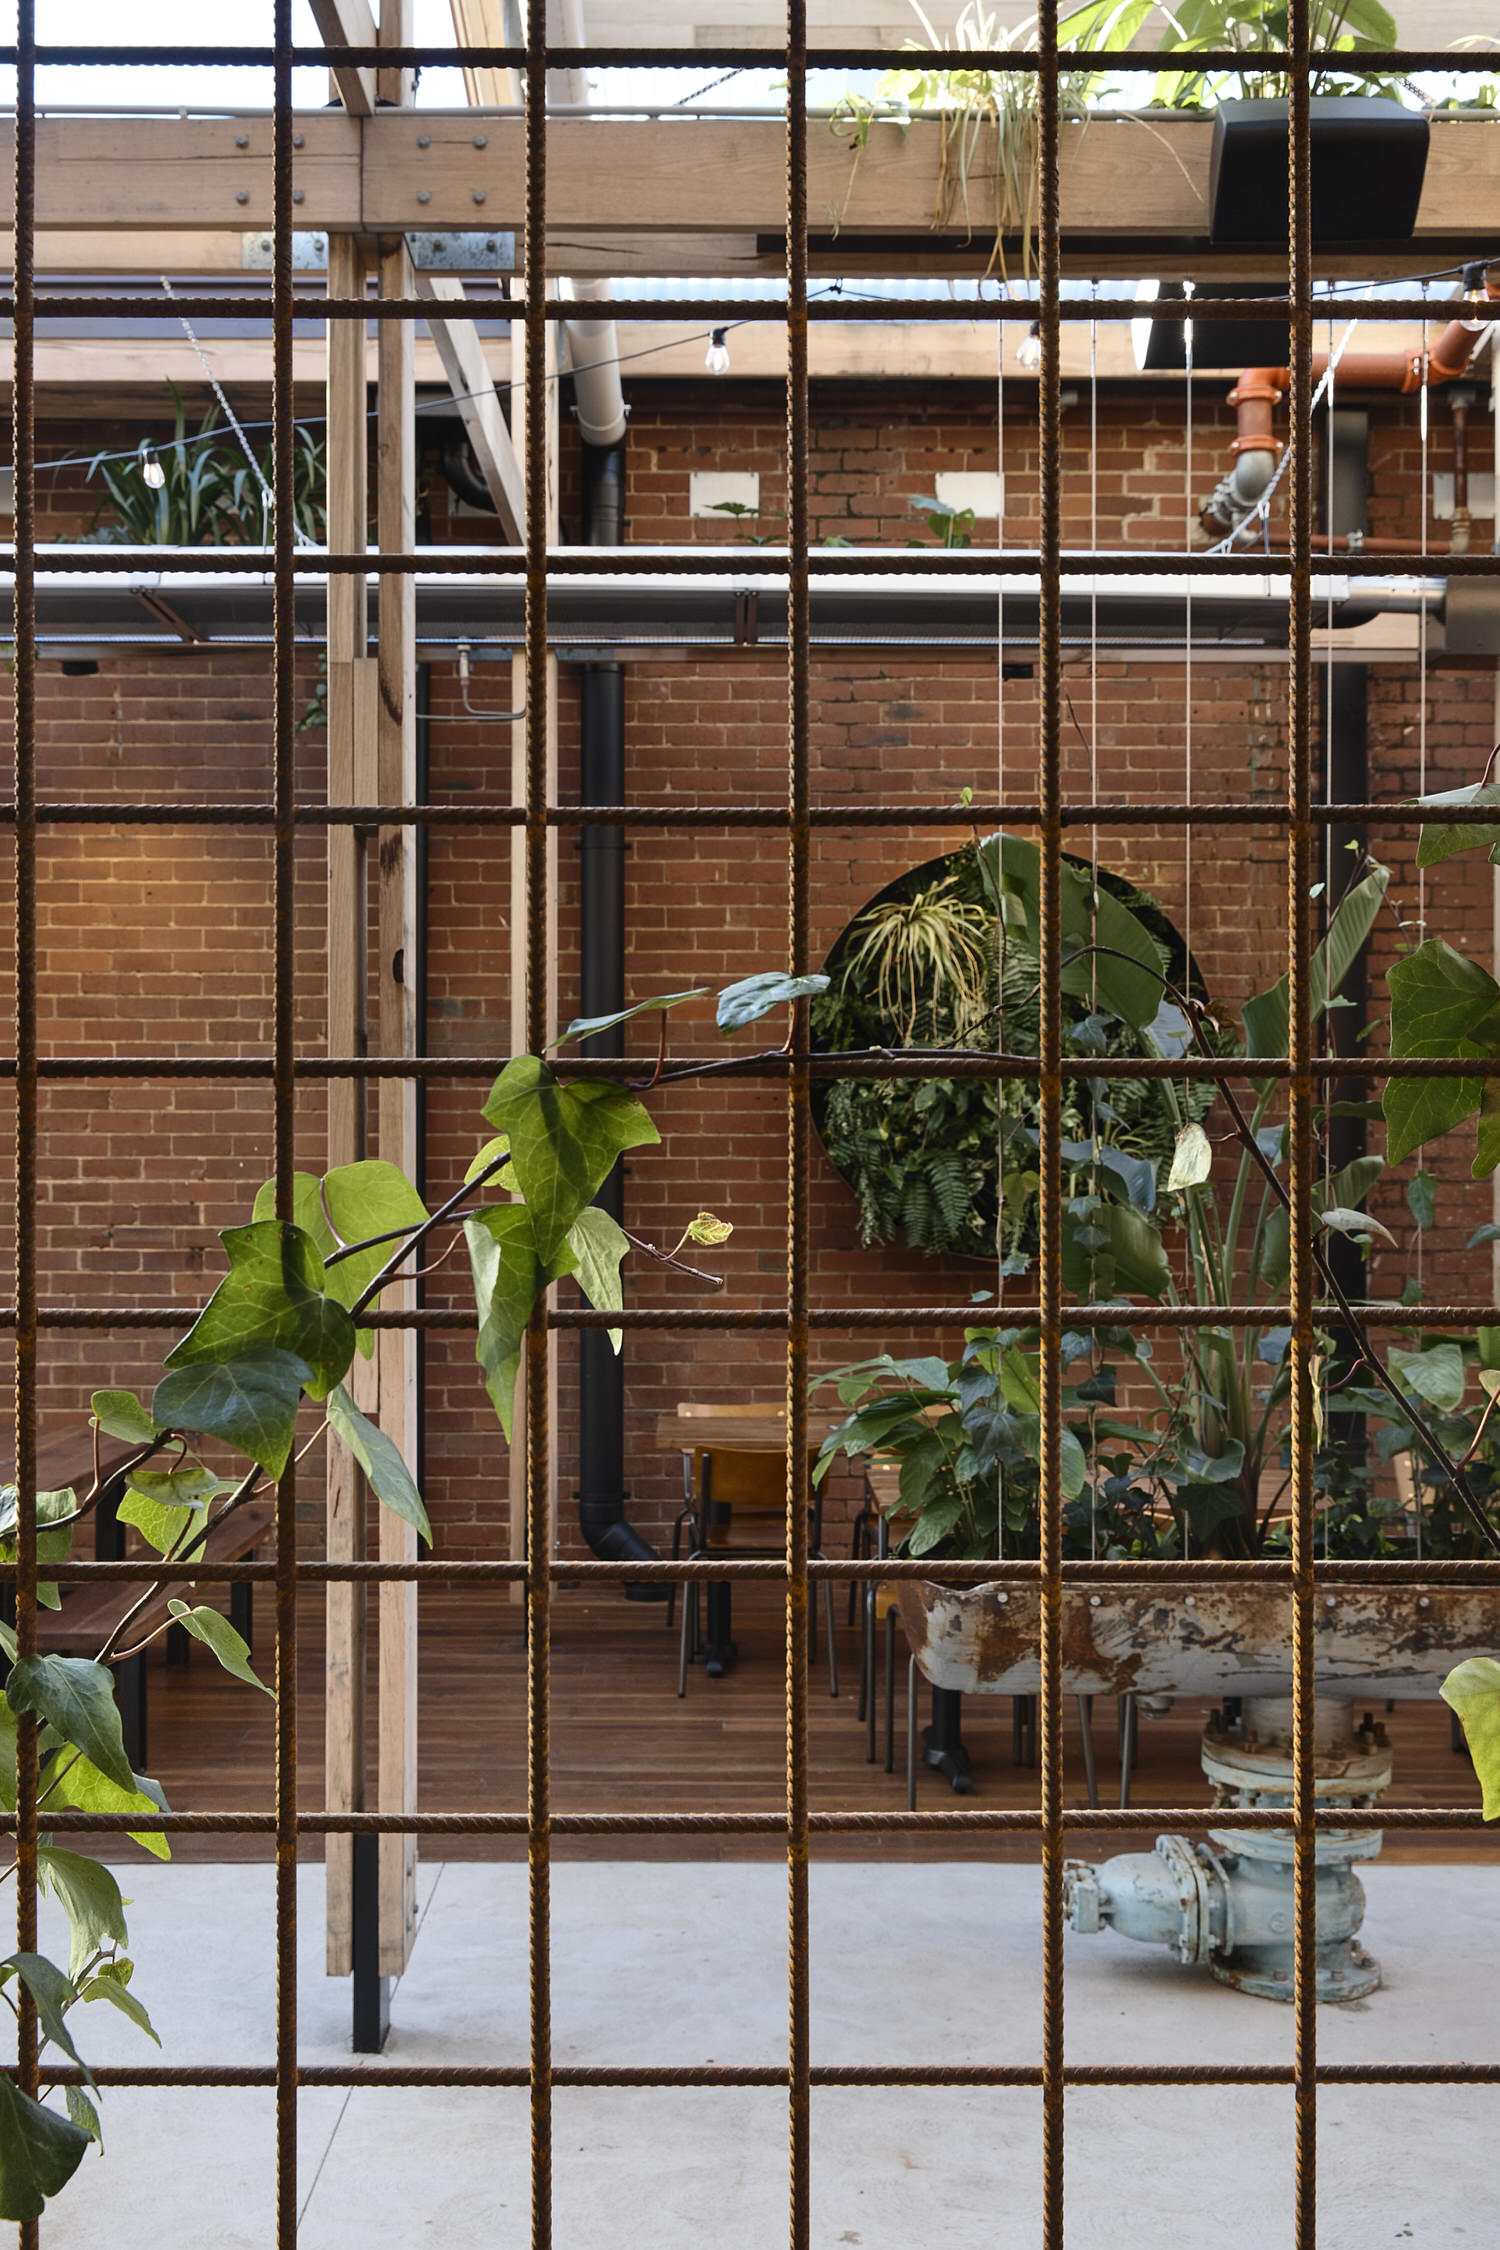 Studio Y Stomping Ground Melbourne Cigarette Factory Adaptive Reuse Photo Derek Swalwell Yellowtrace 20